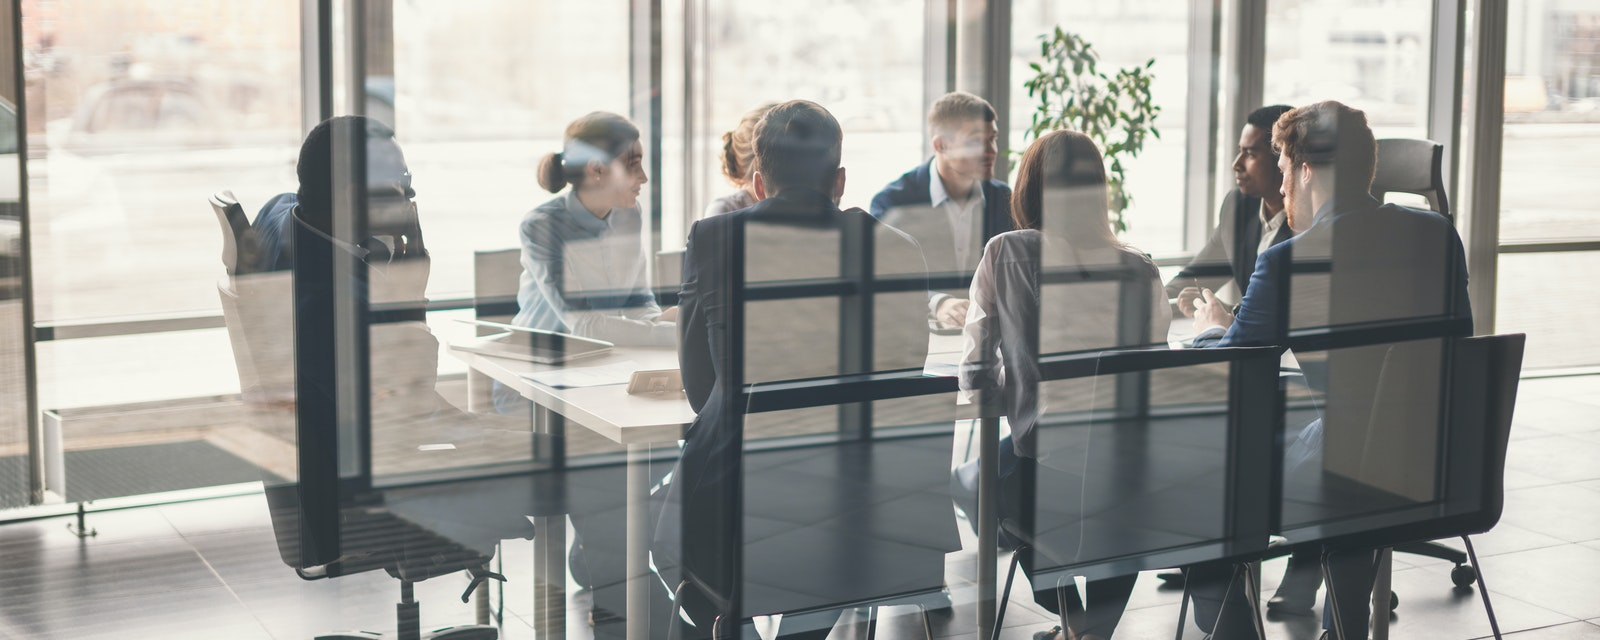 Business people group have meeting and working in modern office